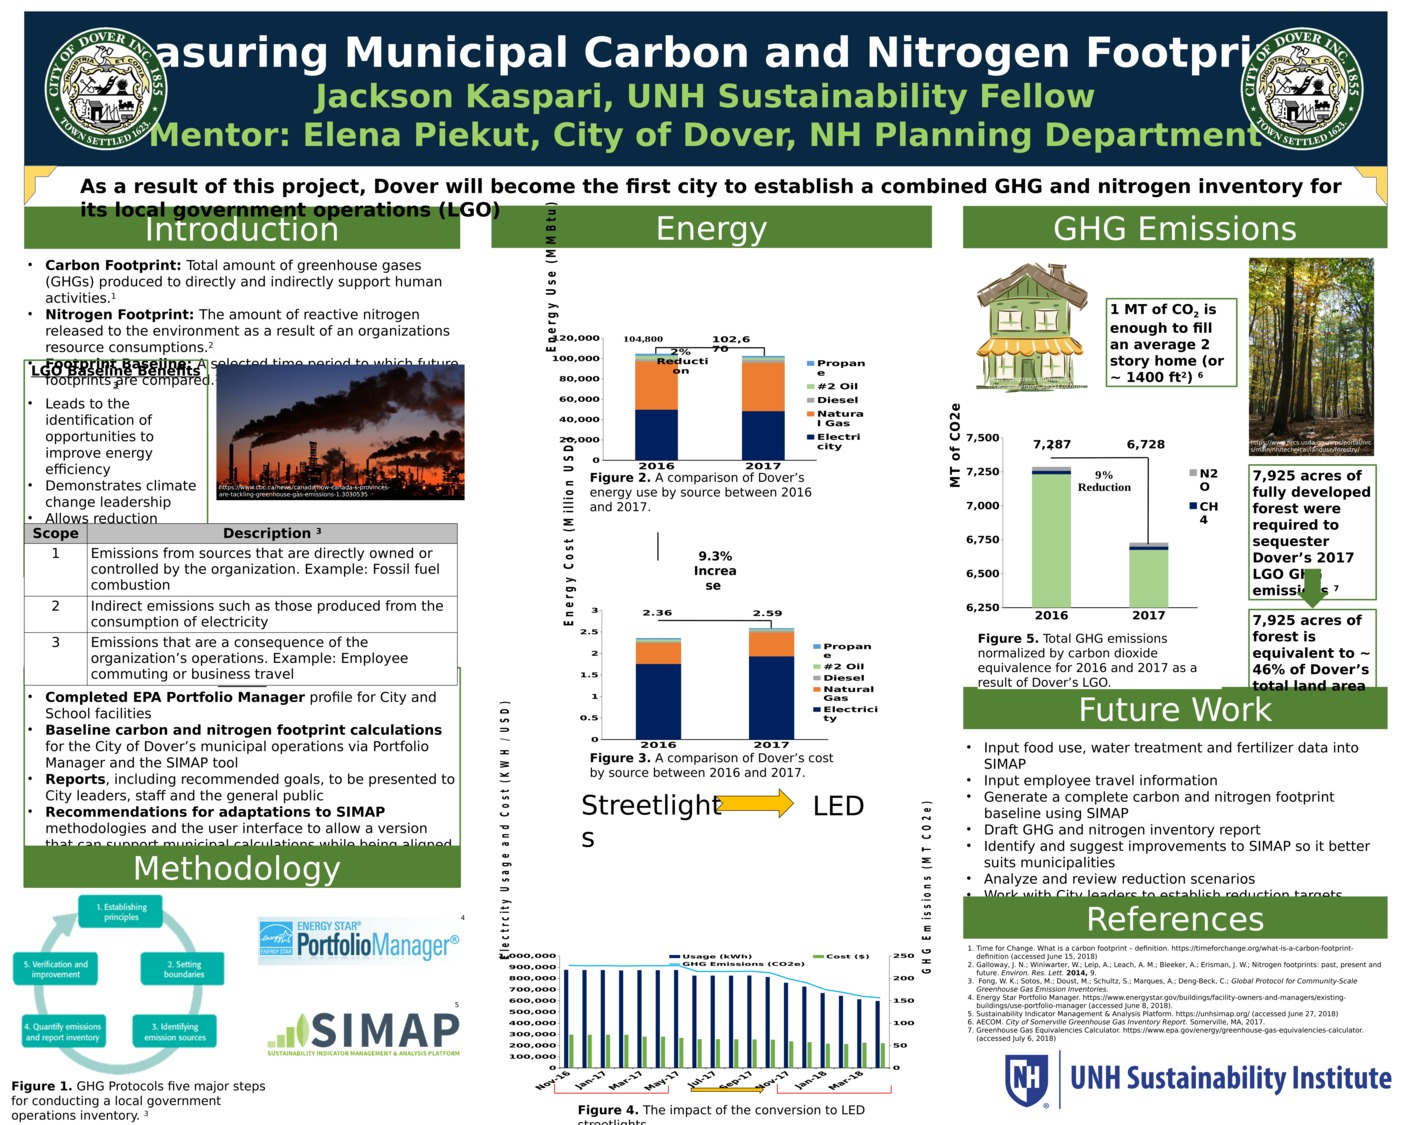 Measuring Municipal Carbon And Nitrogen Footprints  by kasparinh